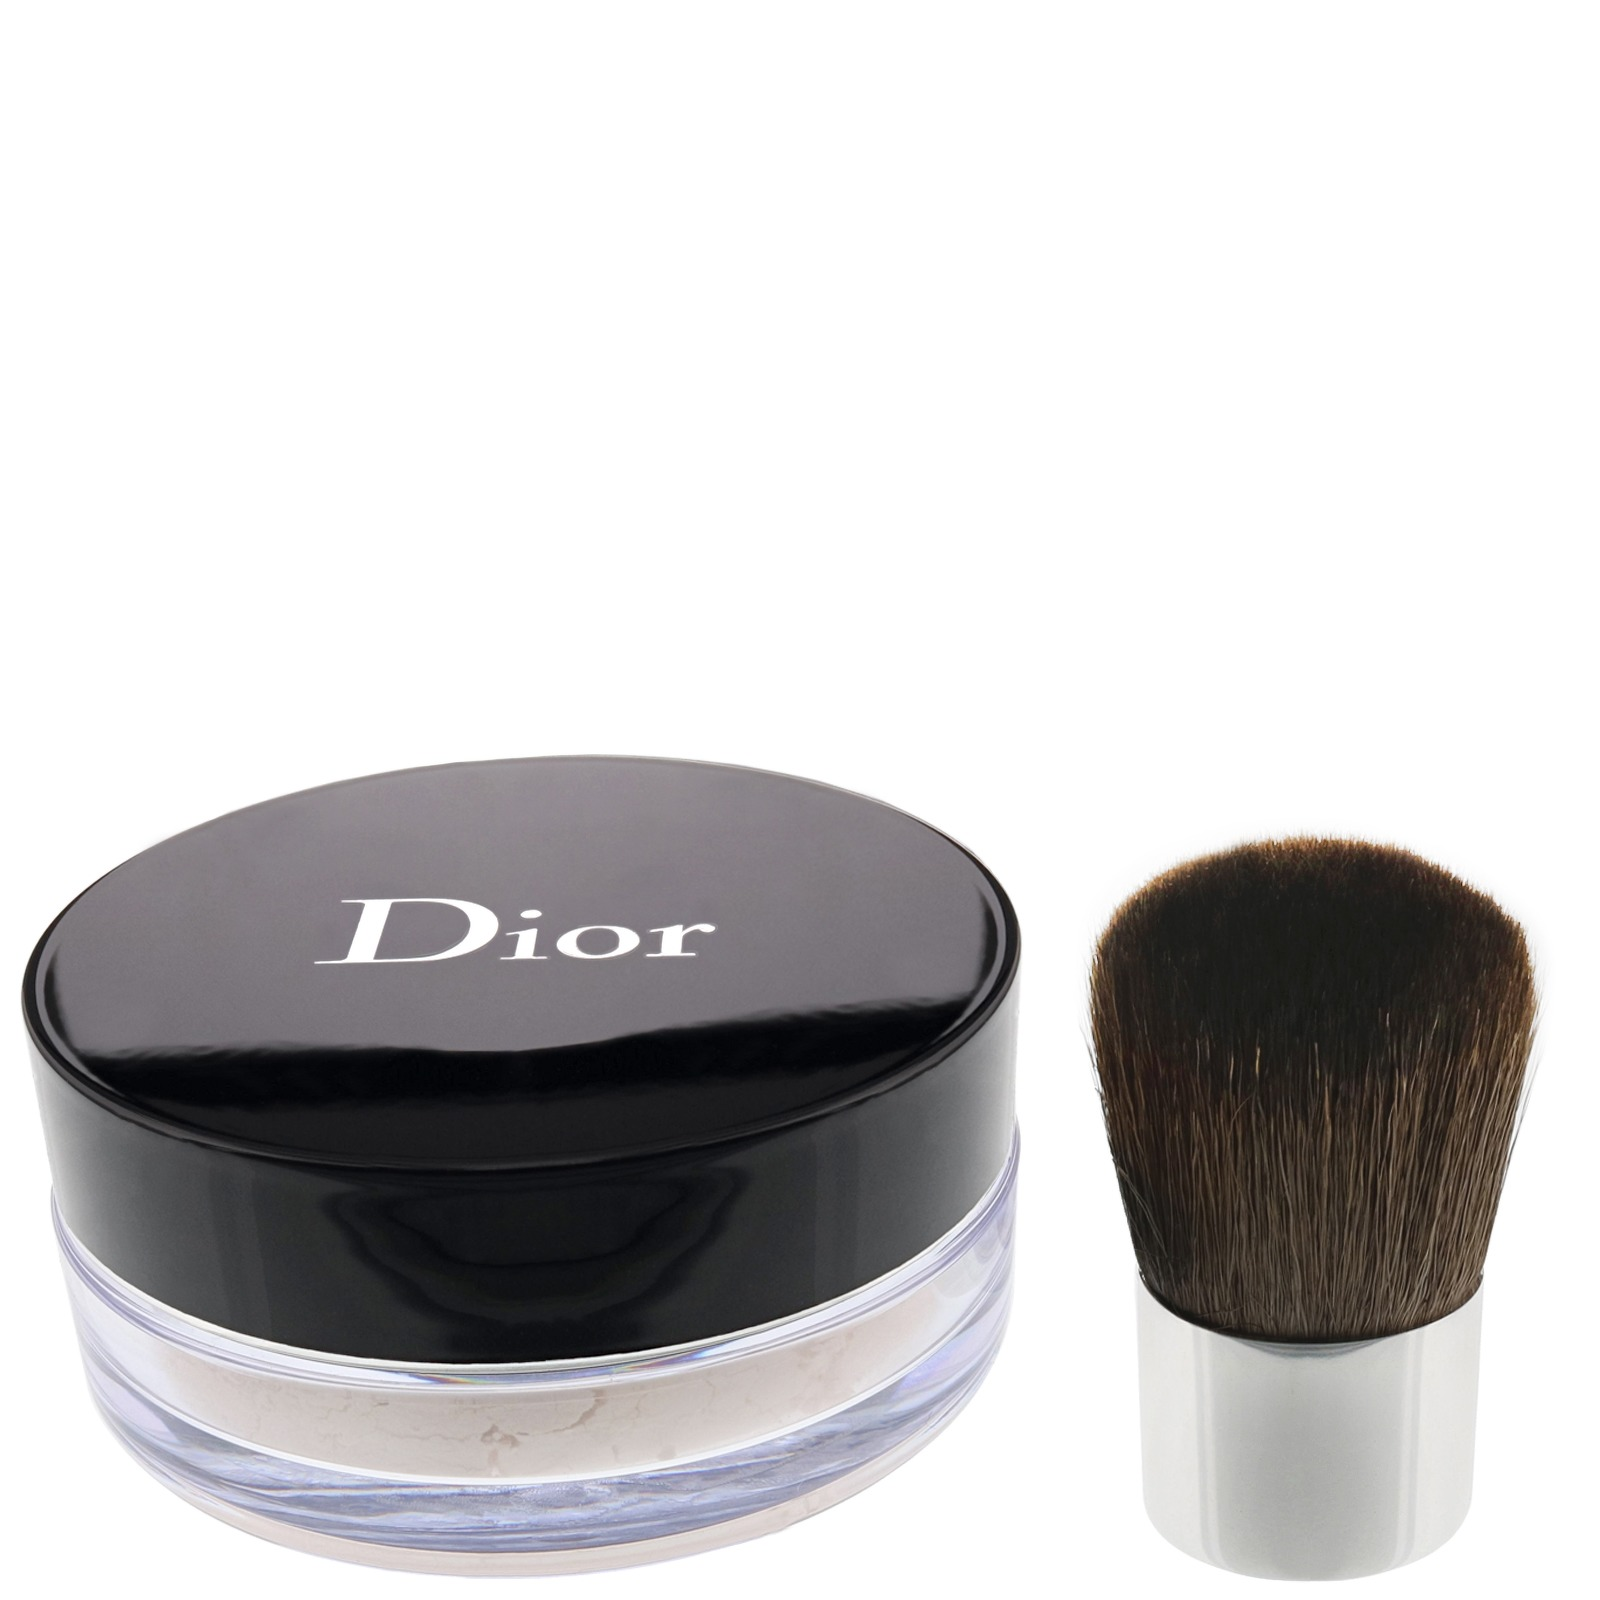 Diorskin Forever & Ever Control Loose Powder by Dior #9